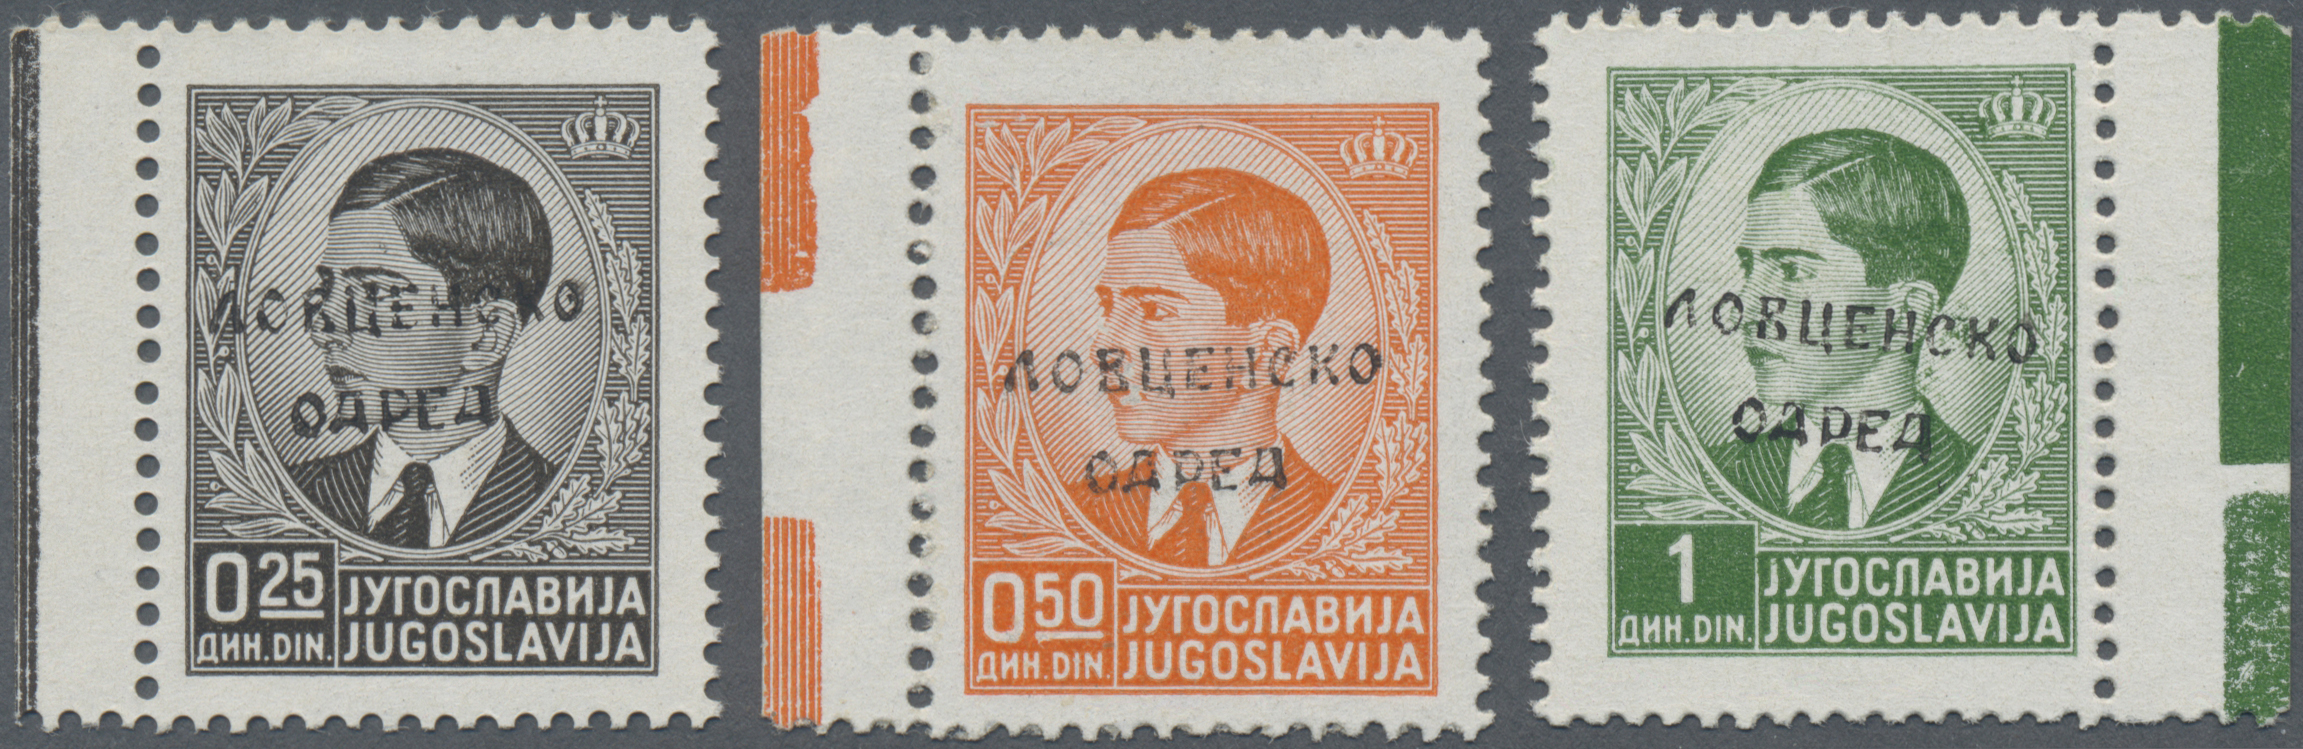 Lot 09903 - Italienische Besetzung 1941/43 - Montenegro  -  Auktionshaus Christoph Gärtner GmbH & Co. KG Sale #49 Single lots Asia, Thematics, Oversea, Europe, Old German States, Third Reich, German Colonies and the Federal Republic of Germany